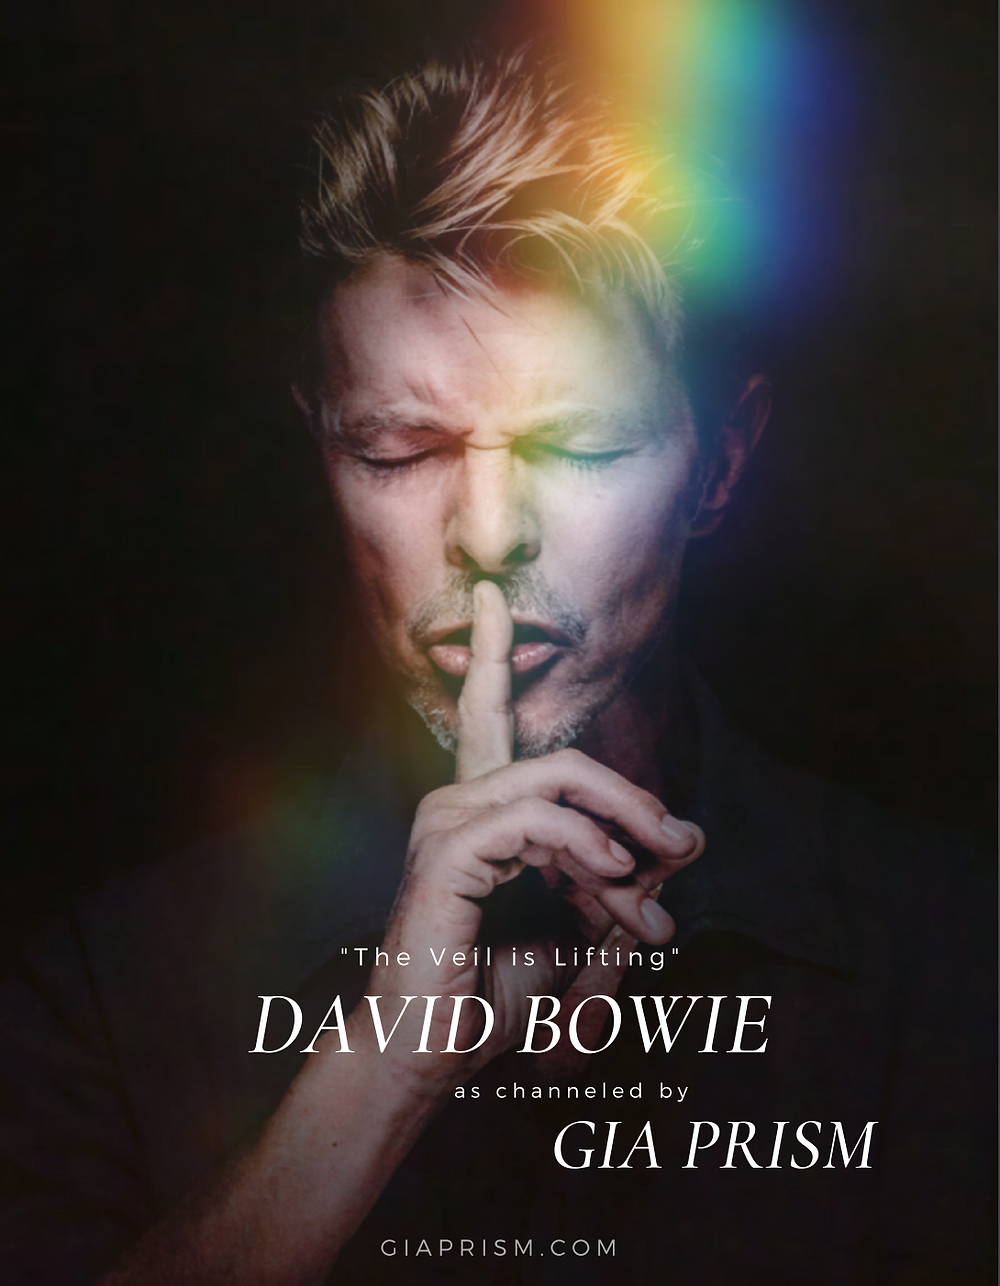 David Bowie PDF channeled by Gia Prism